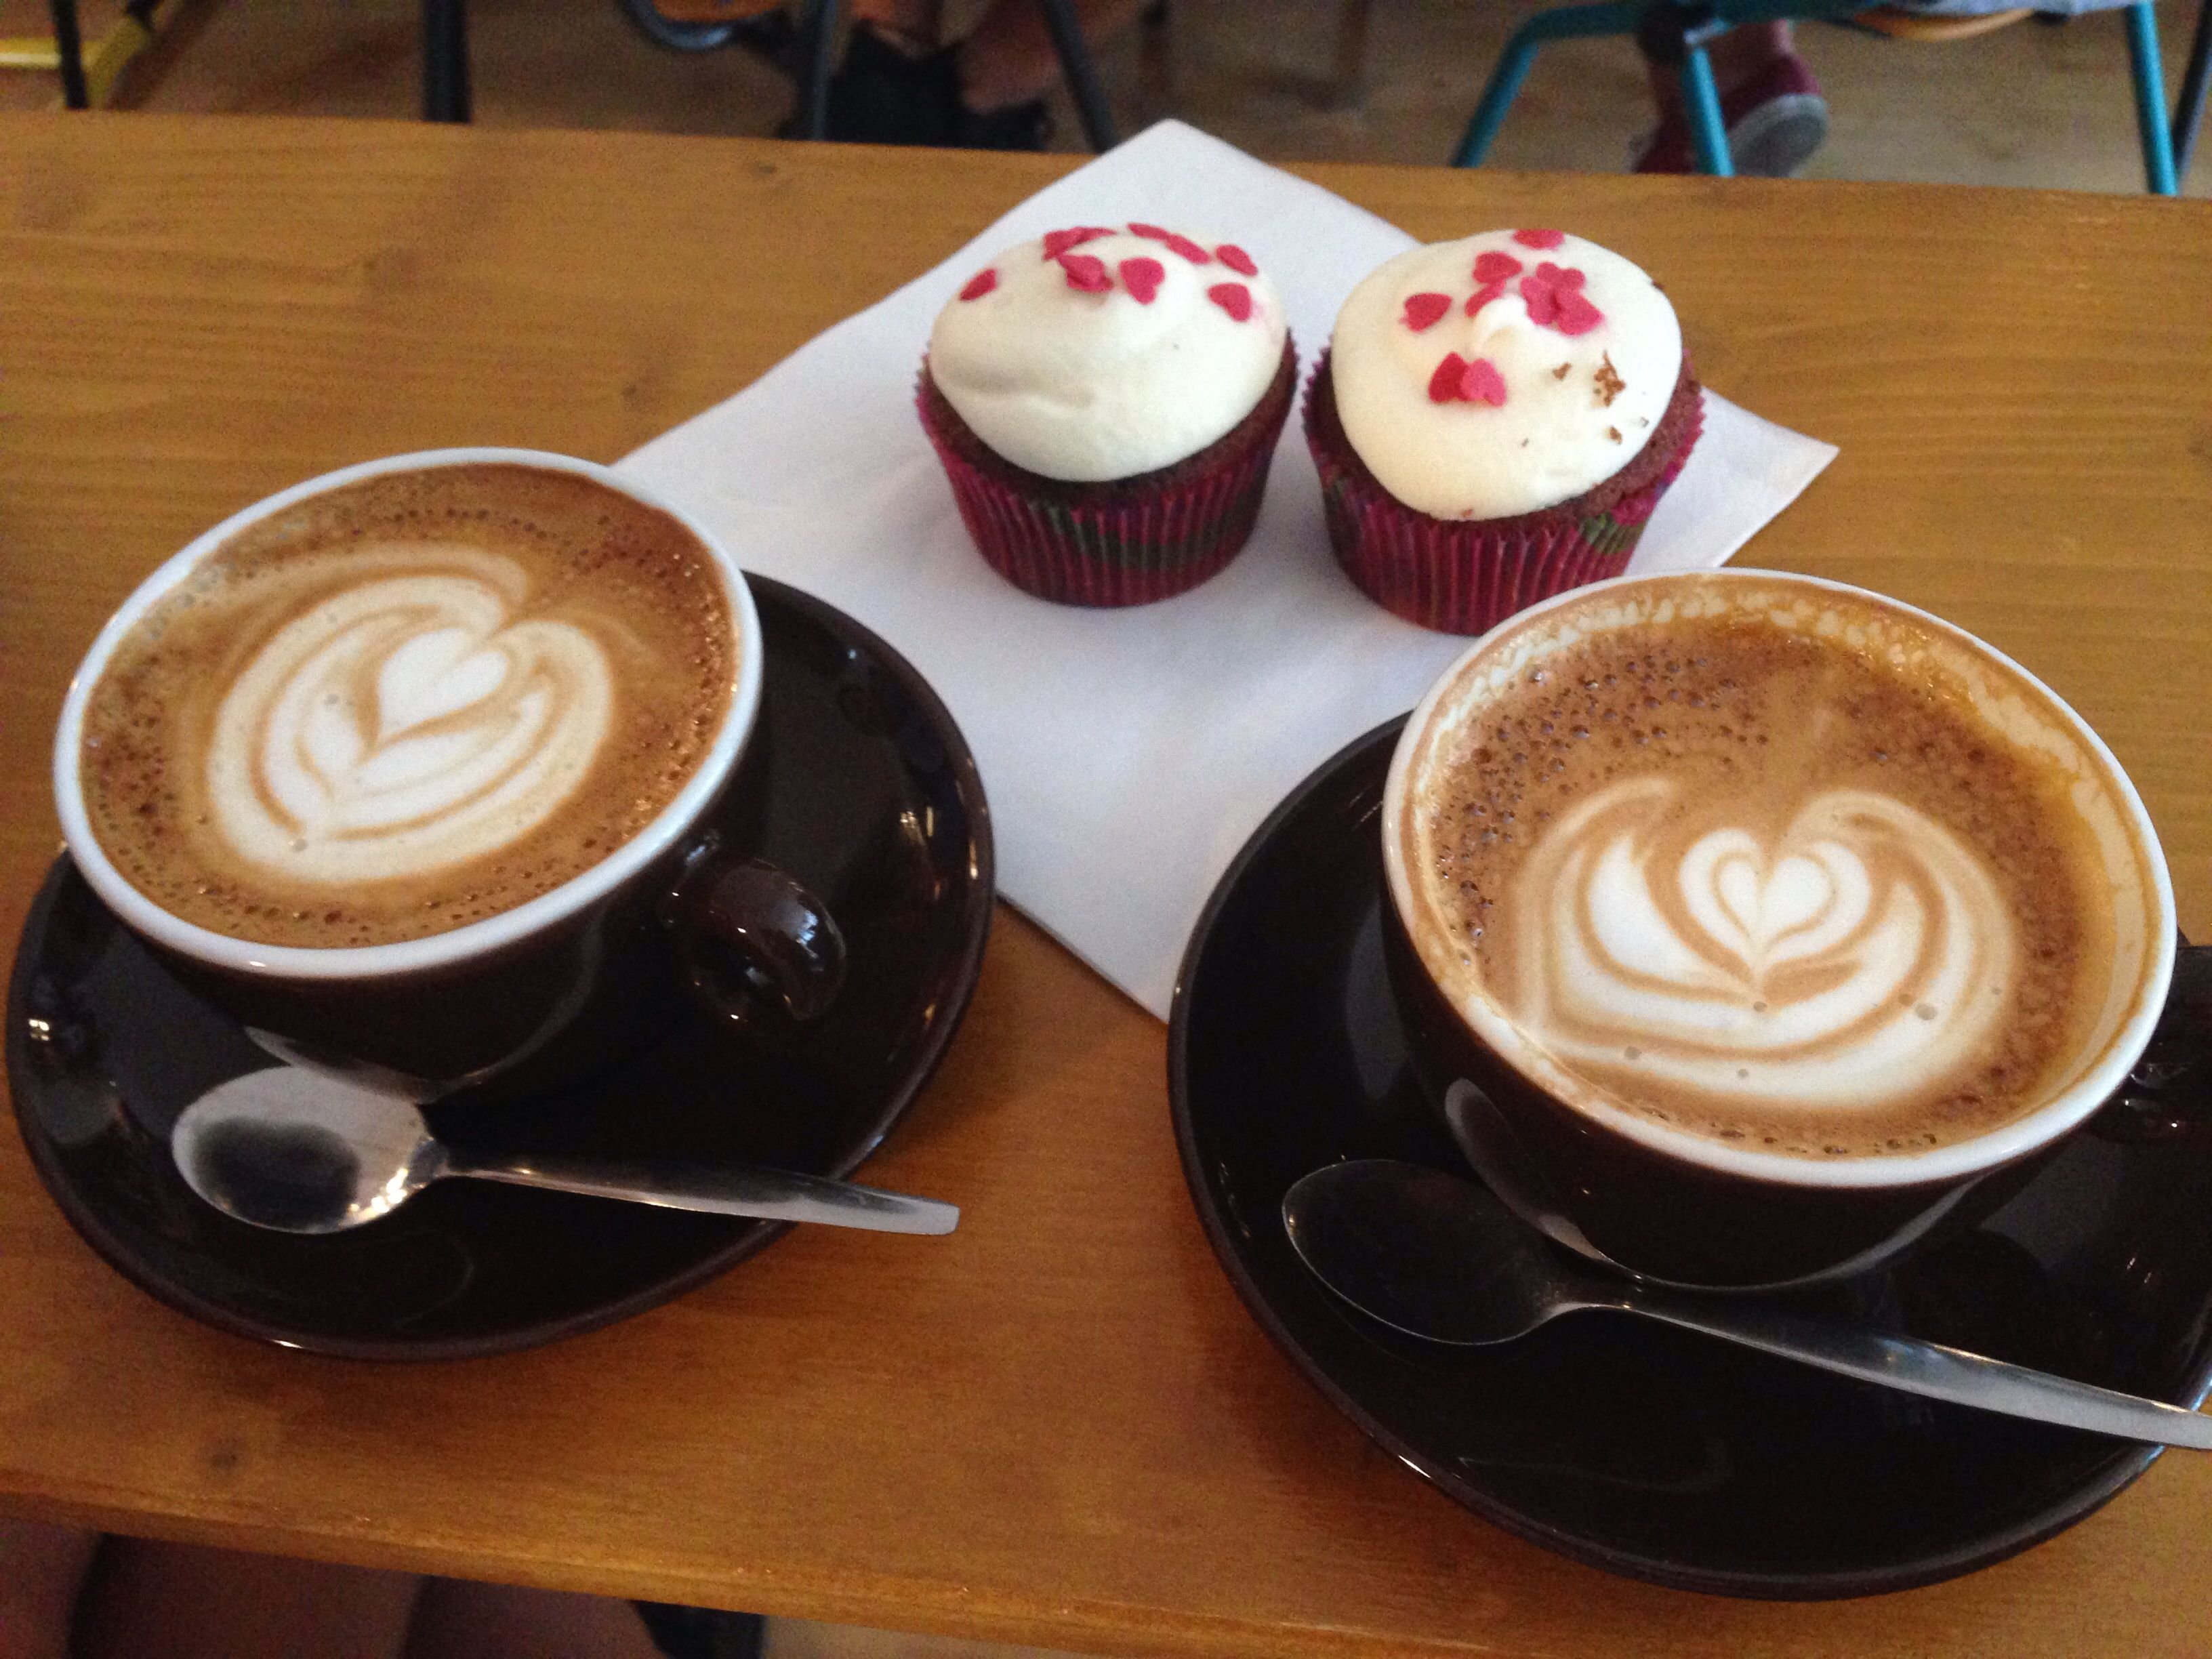 Coffee at Sweet cup cafe Amsterdam